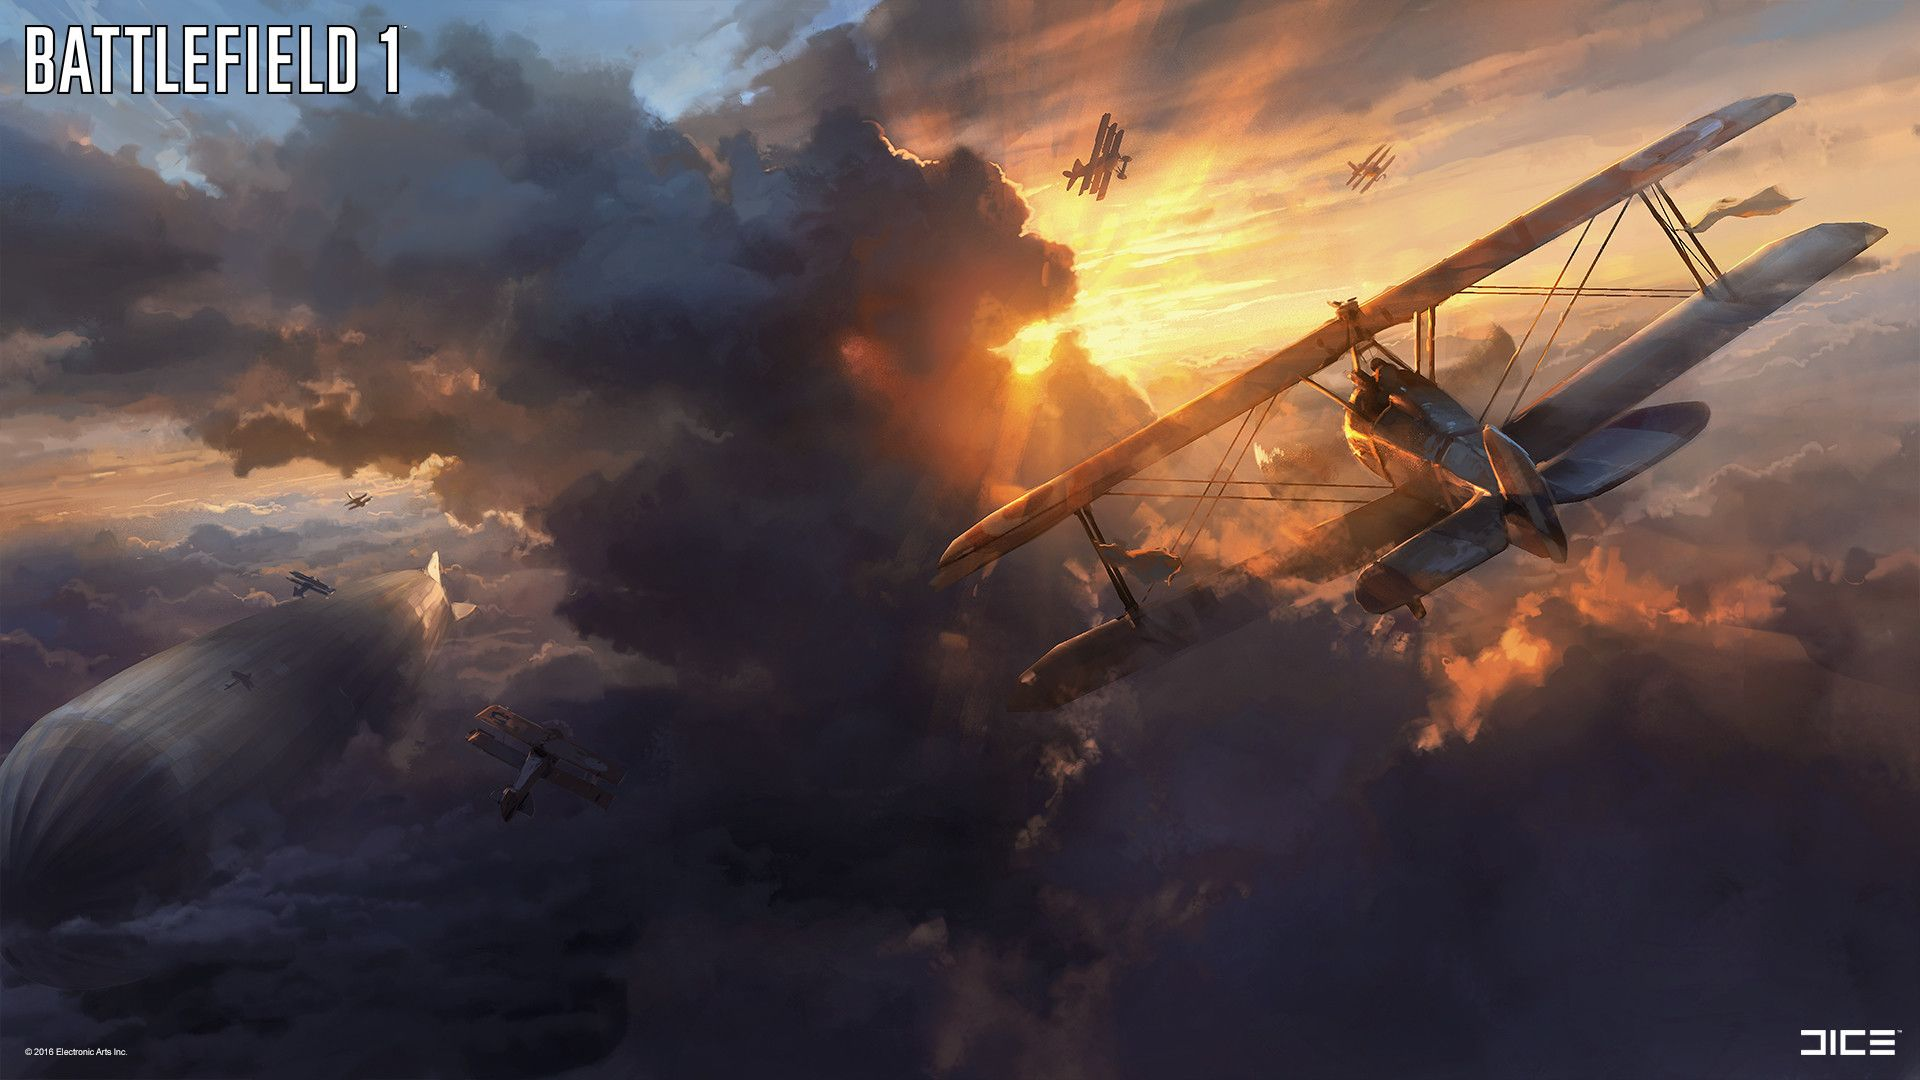 Despite Being Set In One Of The Darkest Periods Of Human History Battlefield 1 Is A Beautiful Video Game Matching The G Battlefield 1 Battlefield Concept Art